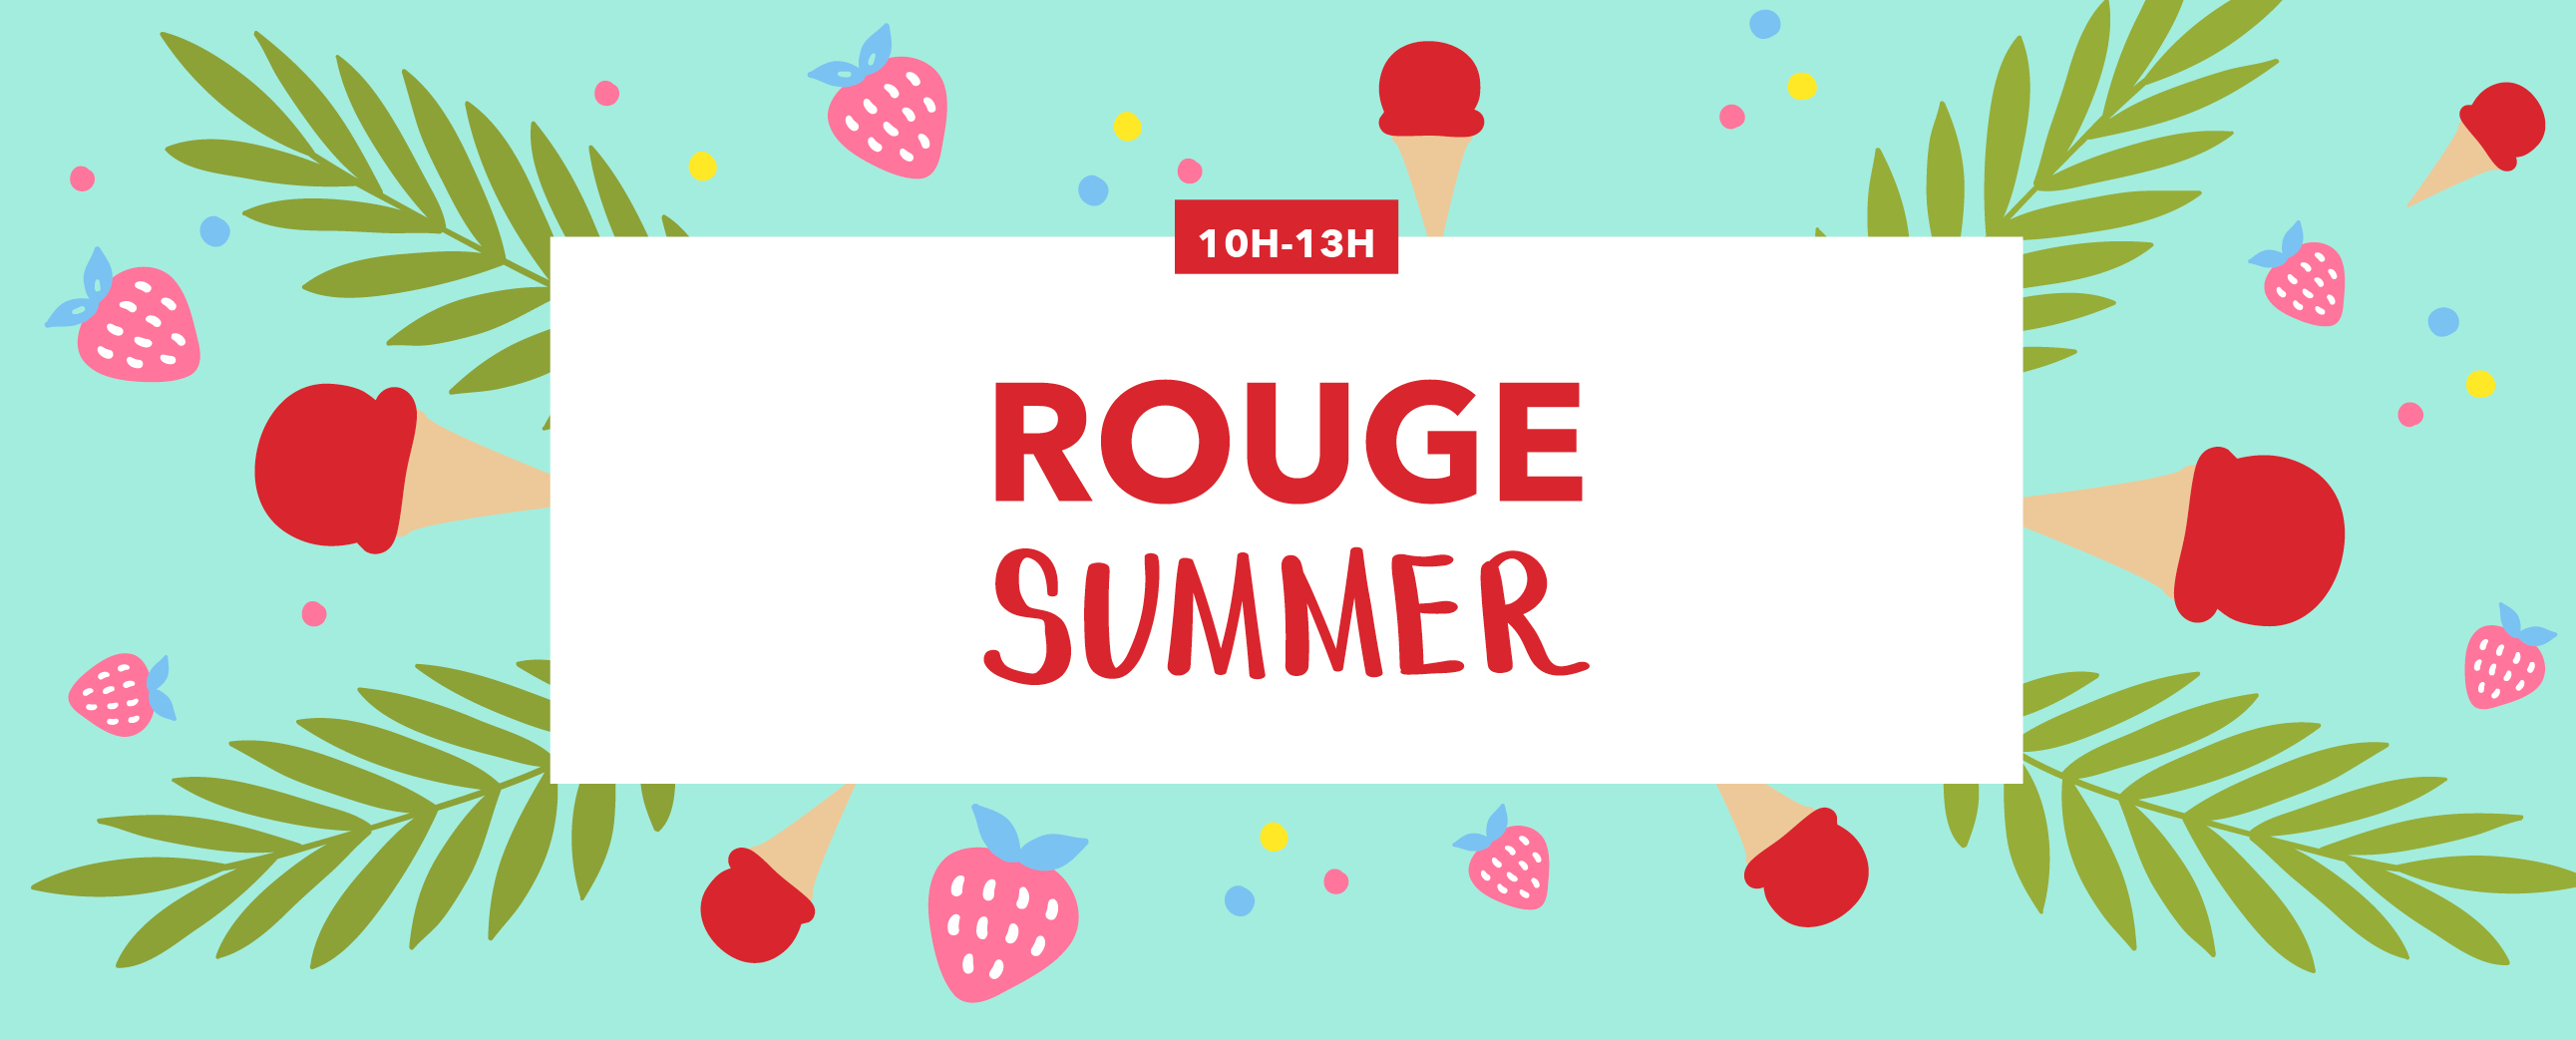 ROUGE SUMMER